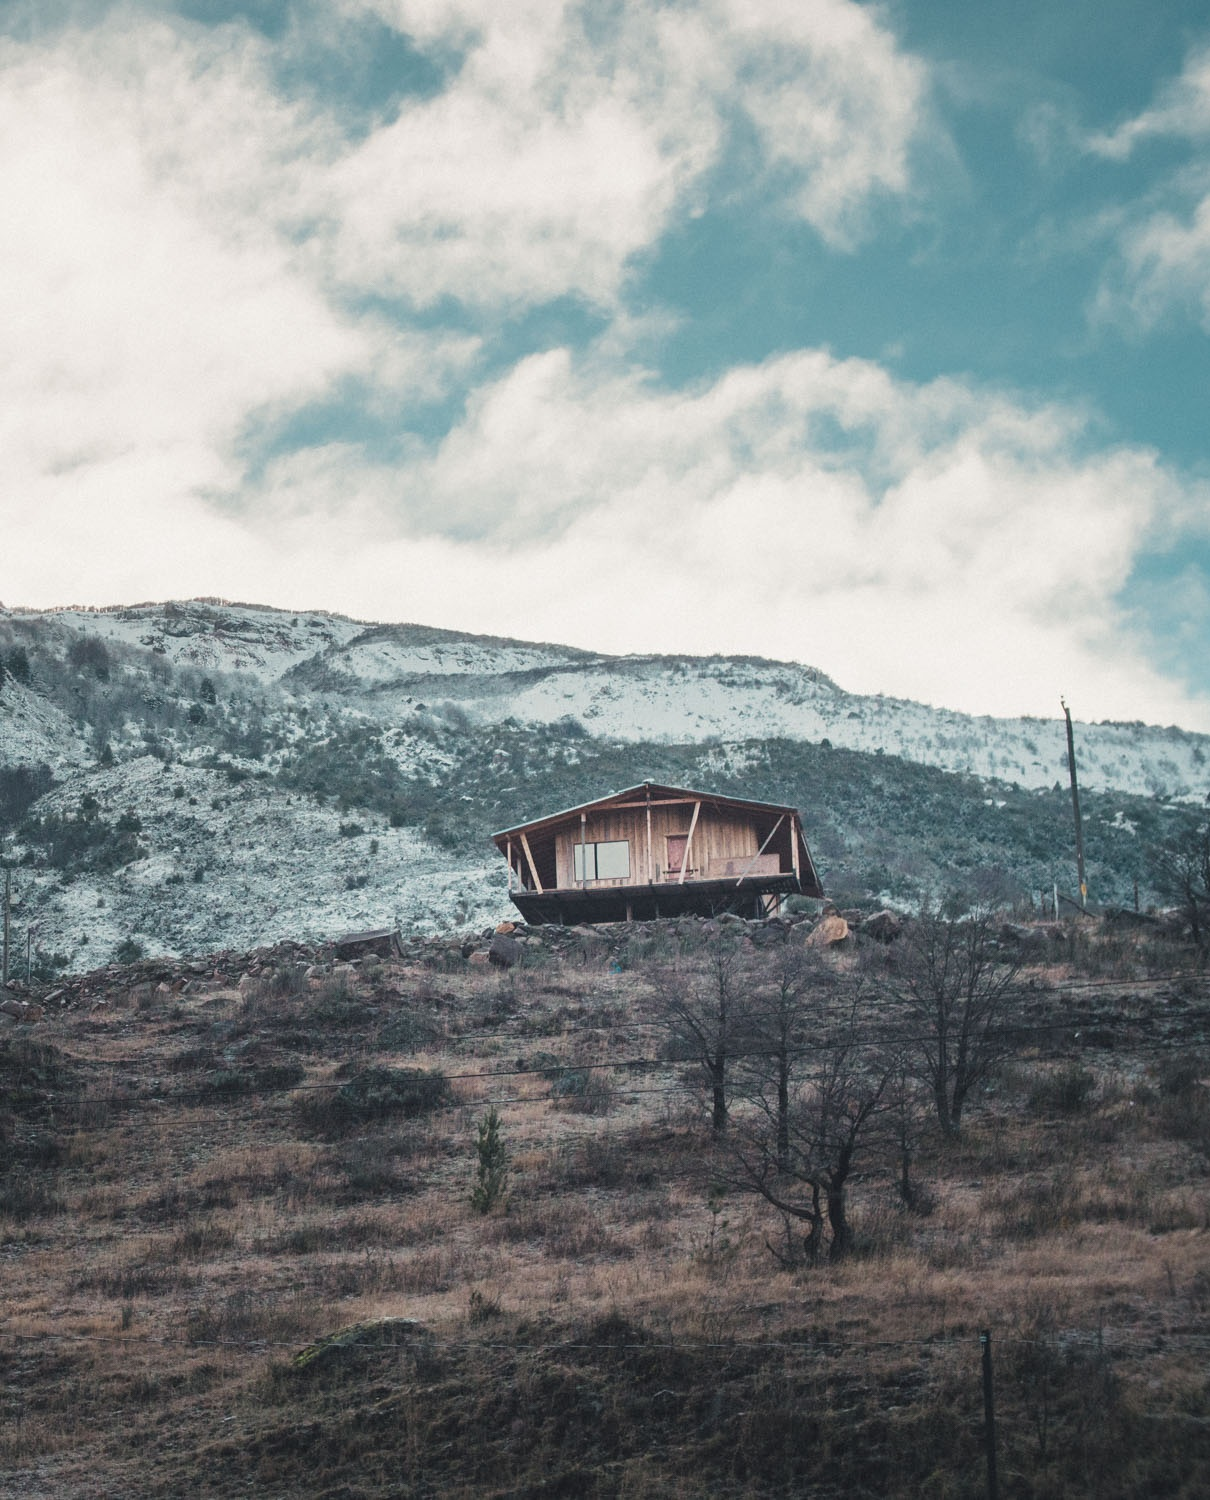 A  cabaña  (cabin) is a very common place to spend a night in Chile. Like most houses they are heated by a wood burner.